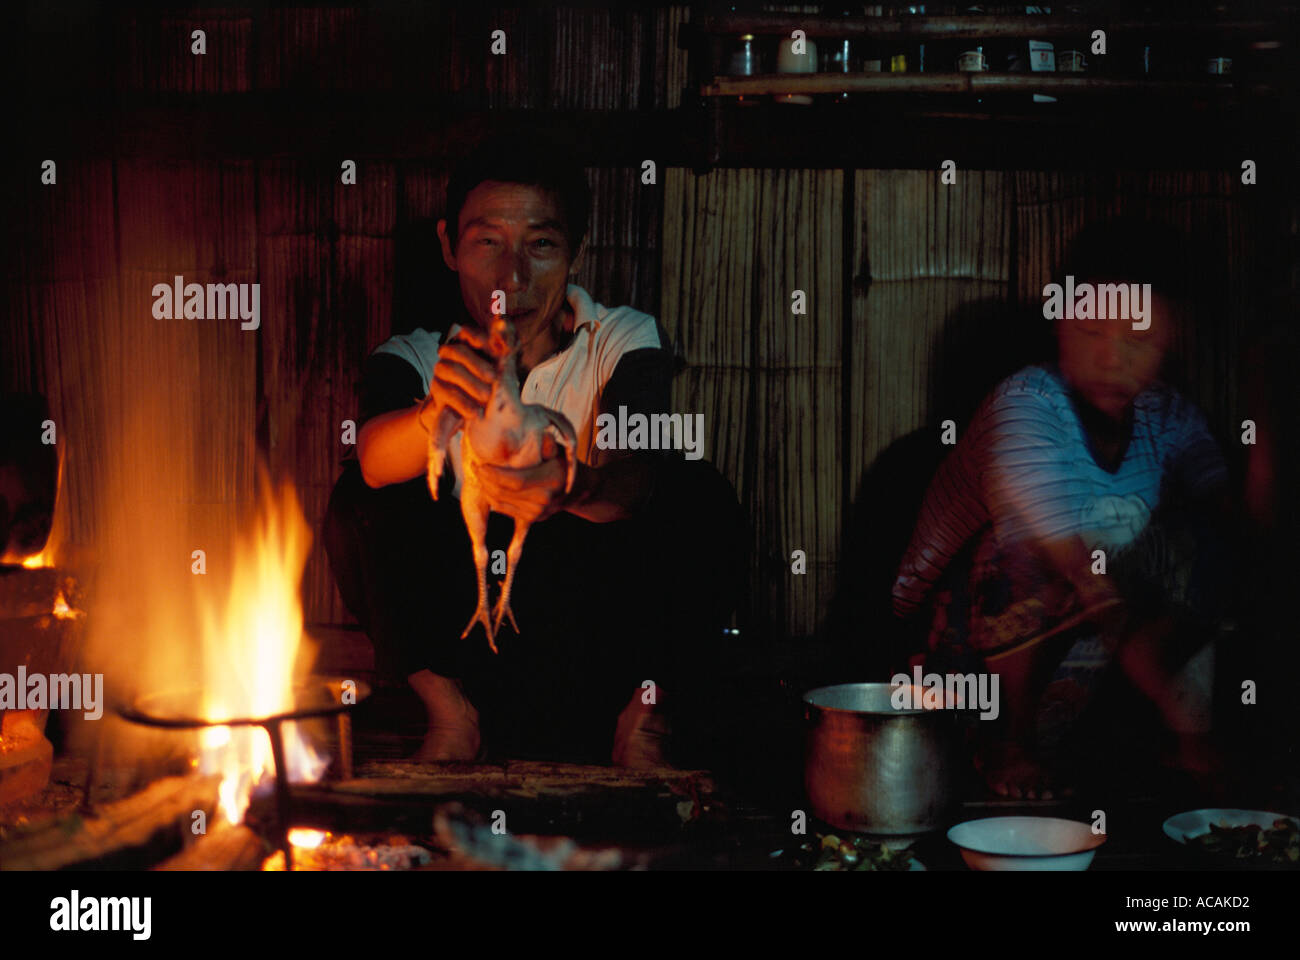 Thai Lahu hilltribe man displays chicken to be cooked over open fire and eaten for evening meal. Woman with motion blur. - Stock Image